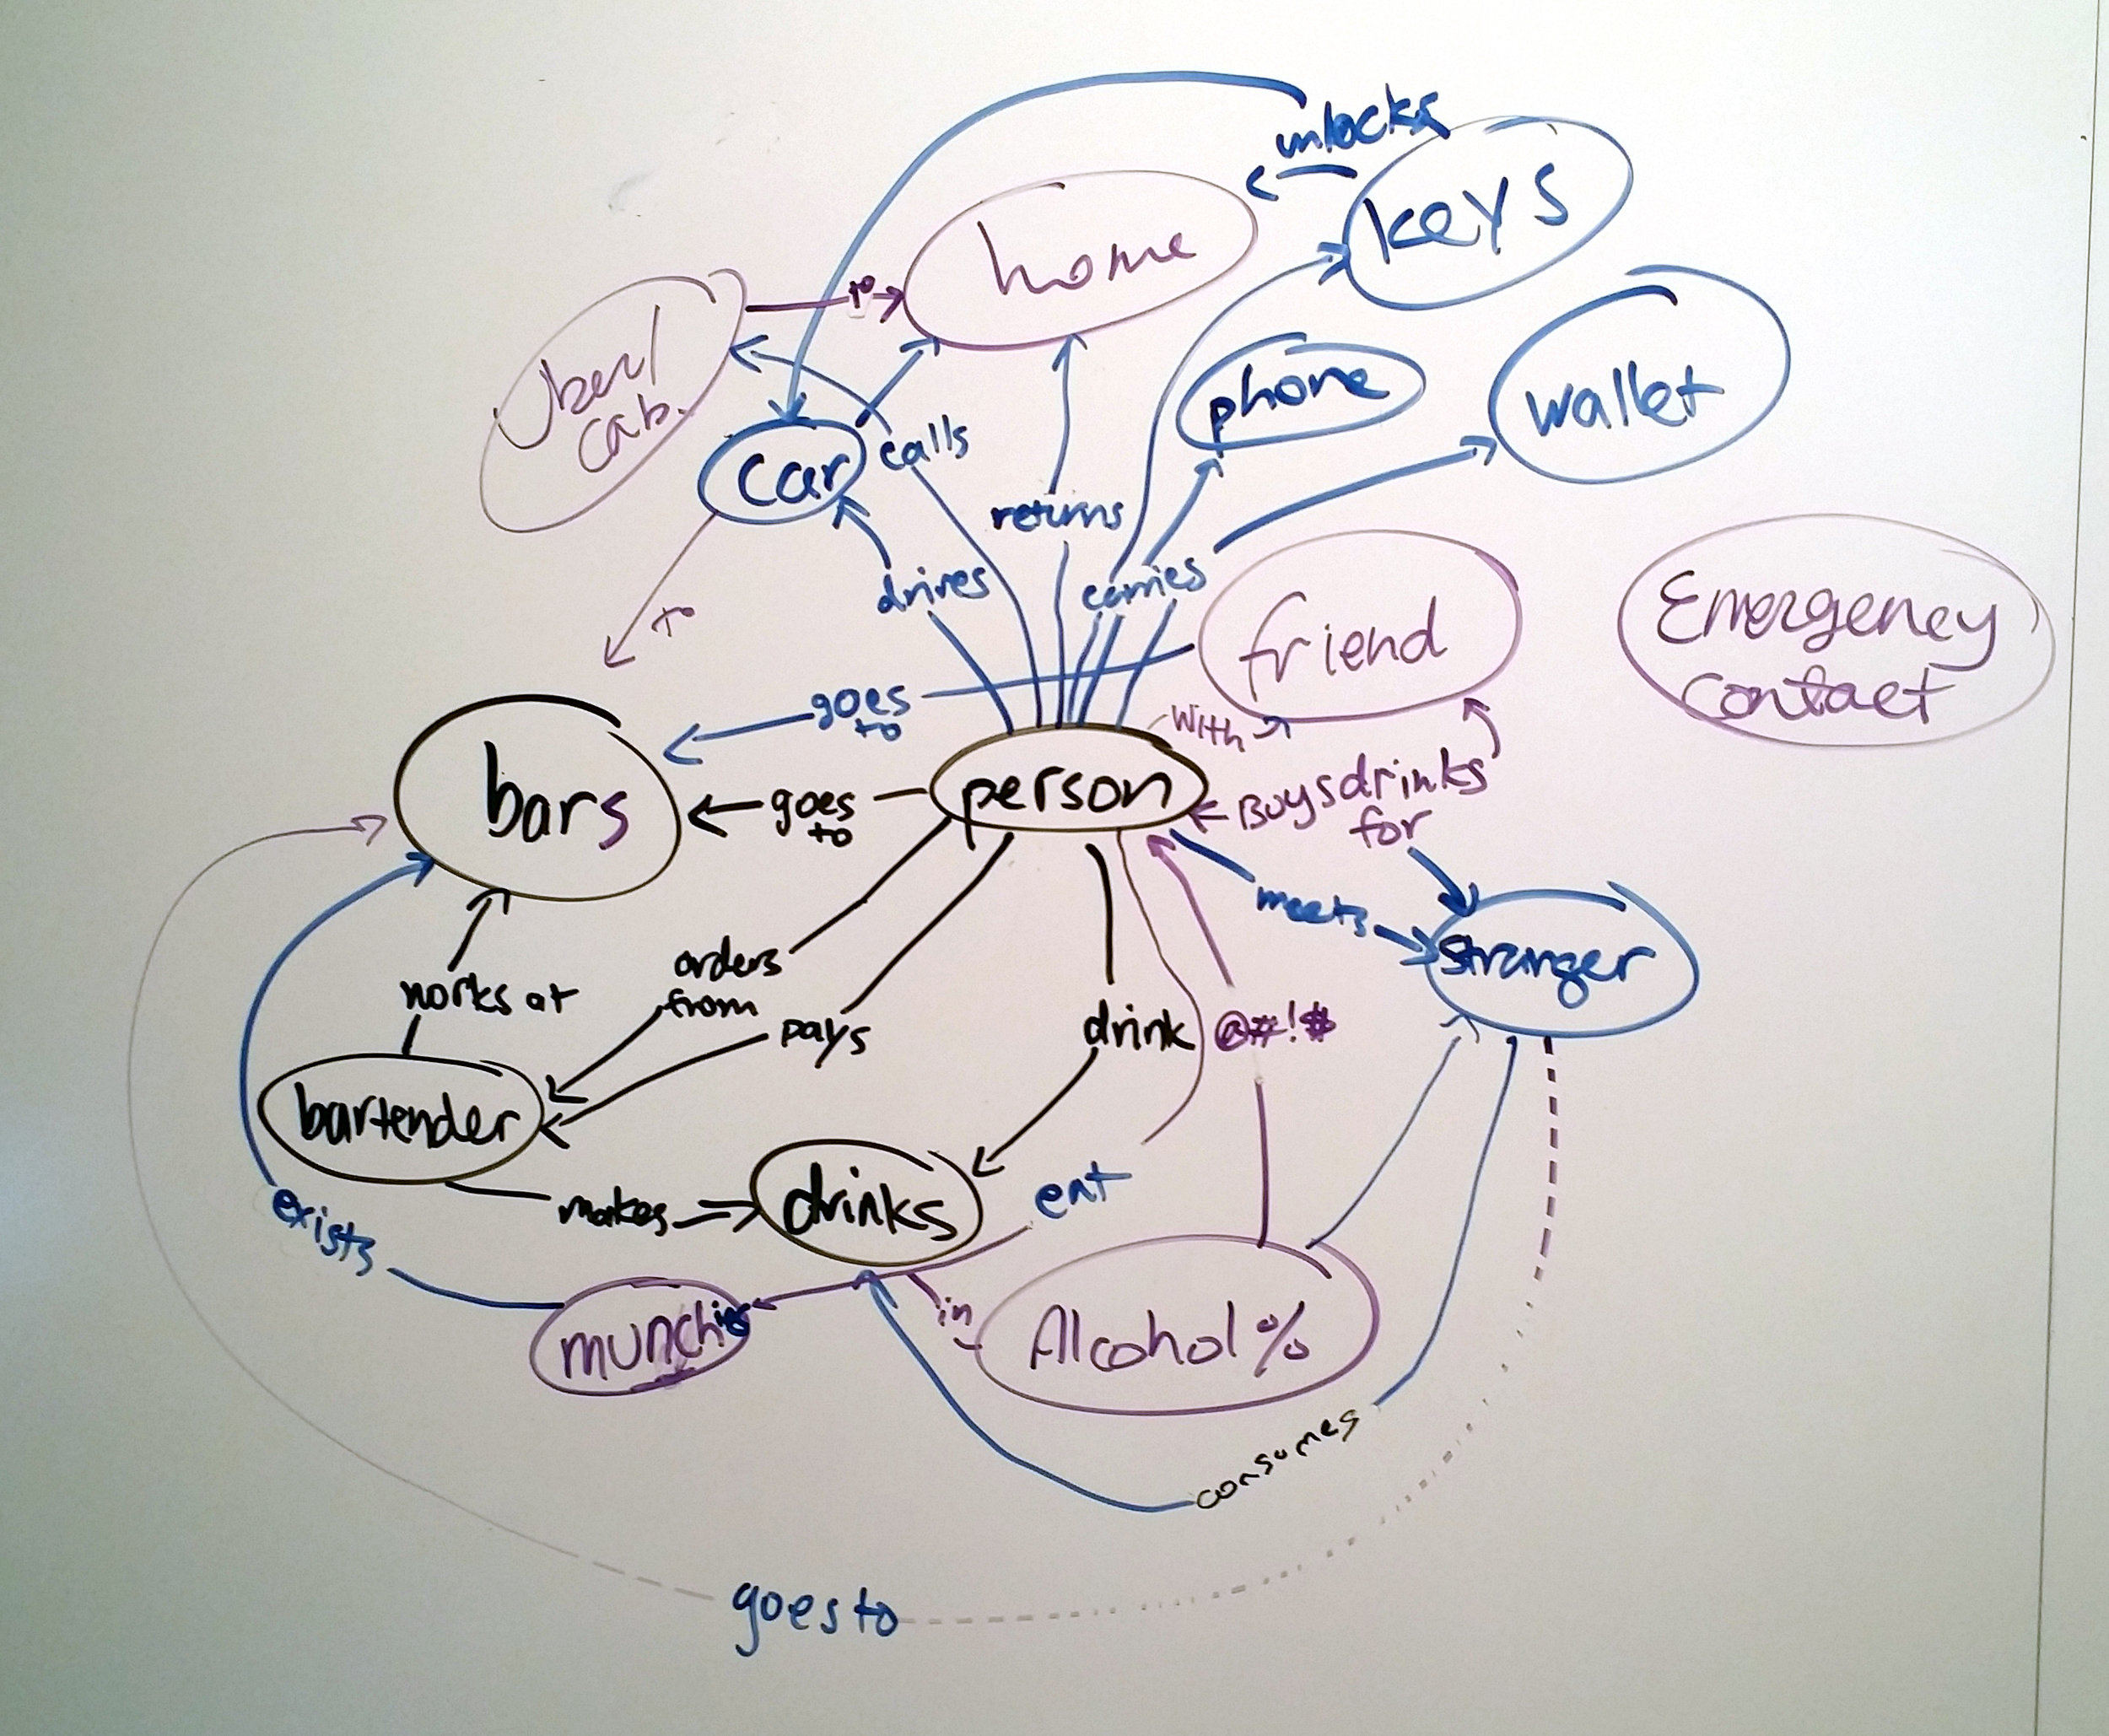 Initial concept map